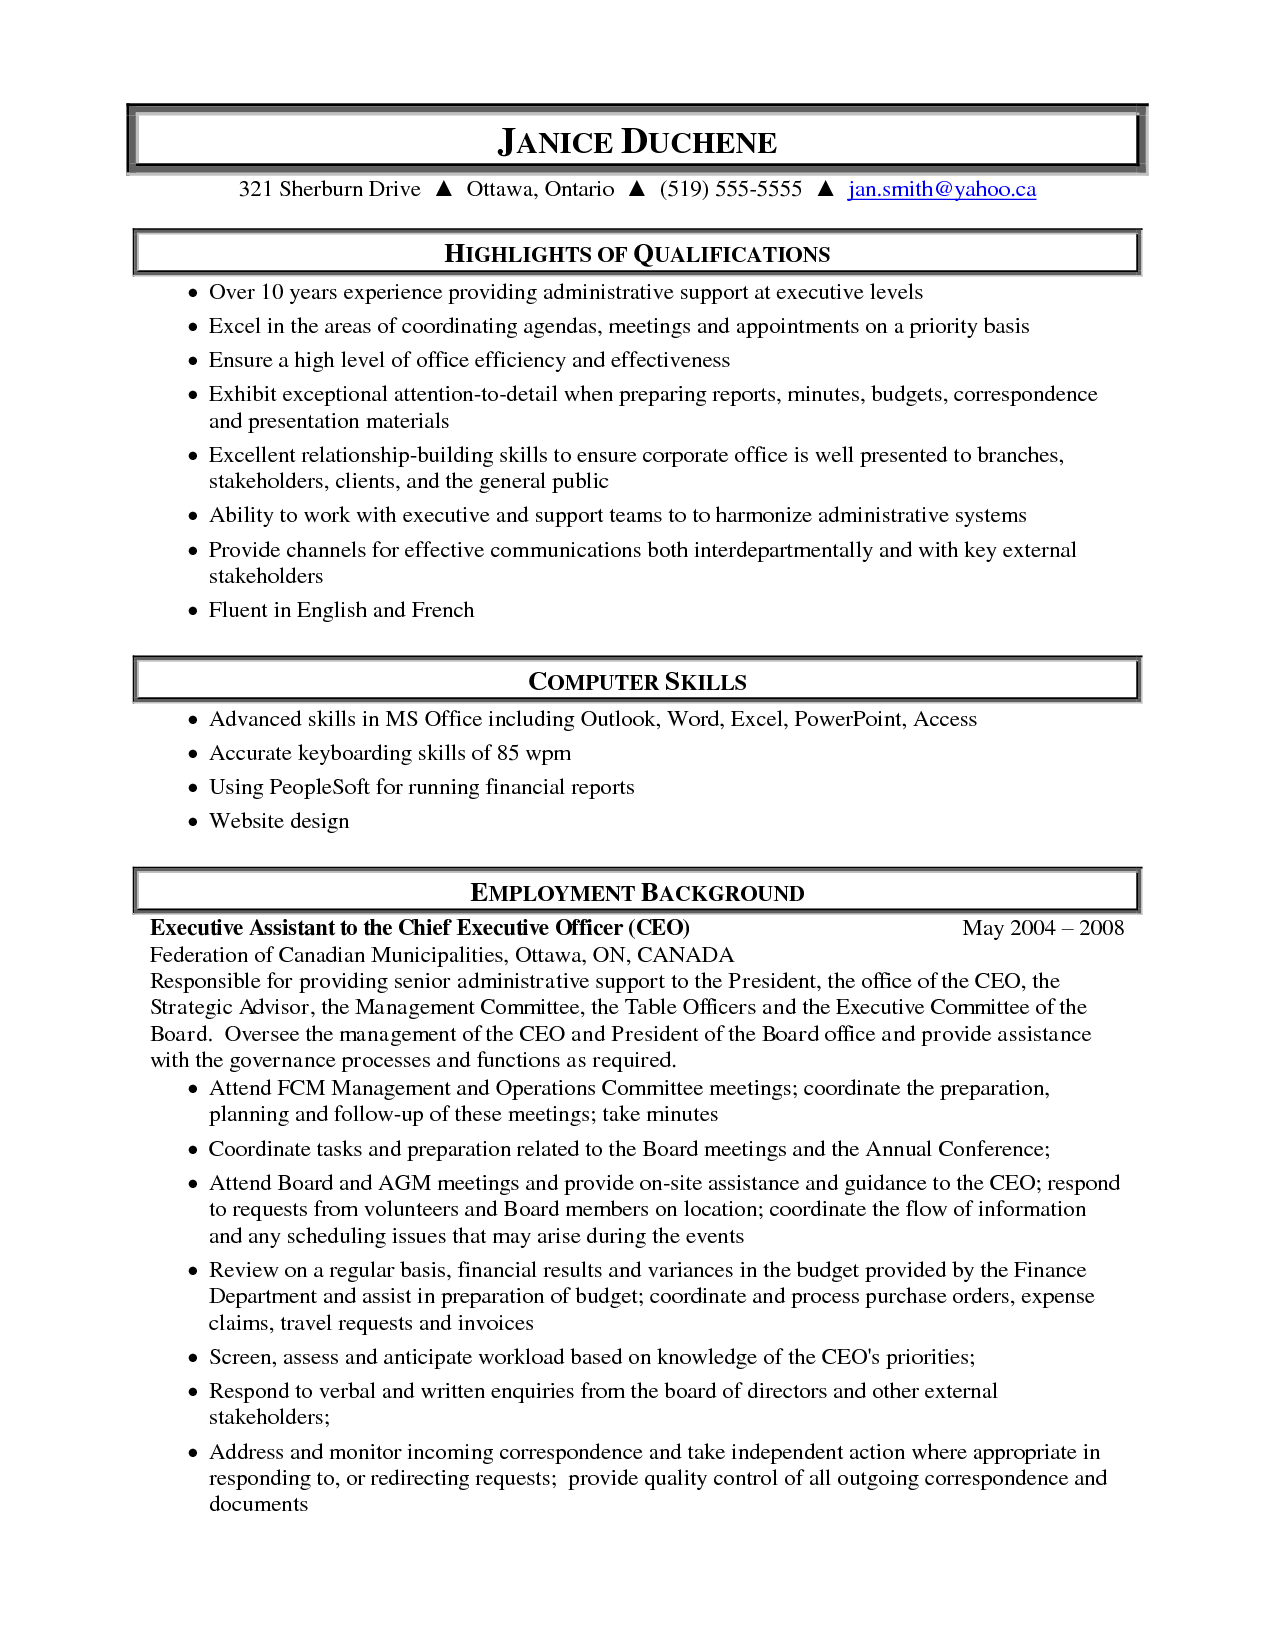 Executive Format Resume Template Free Resume Boards Best Images About Non Profit Samples For Office